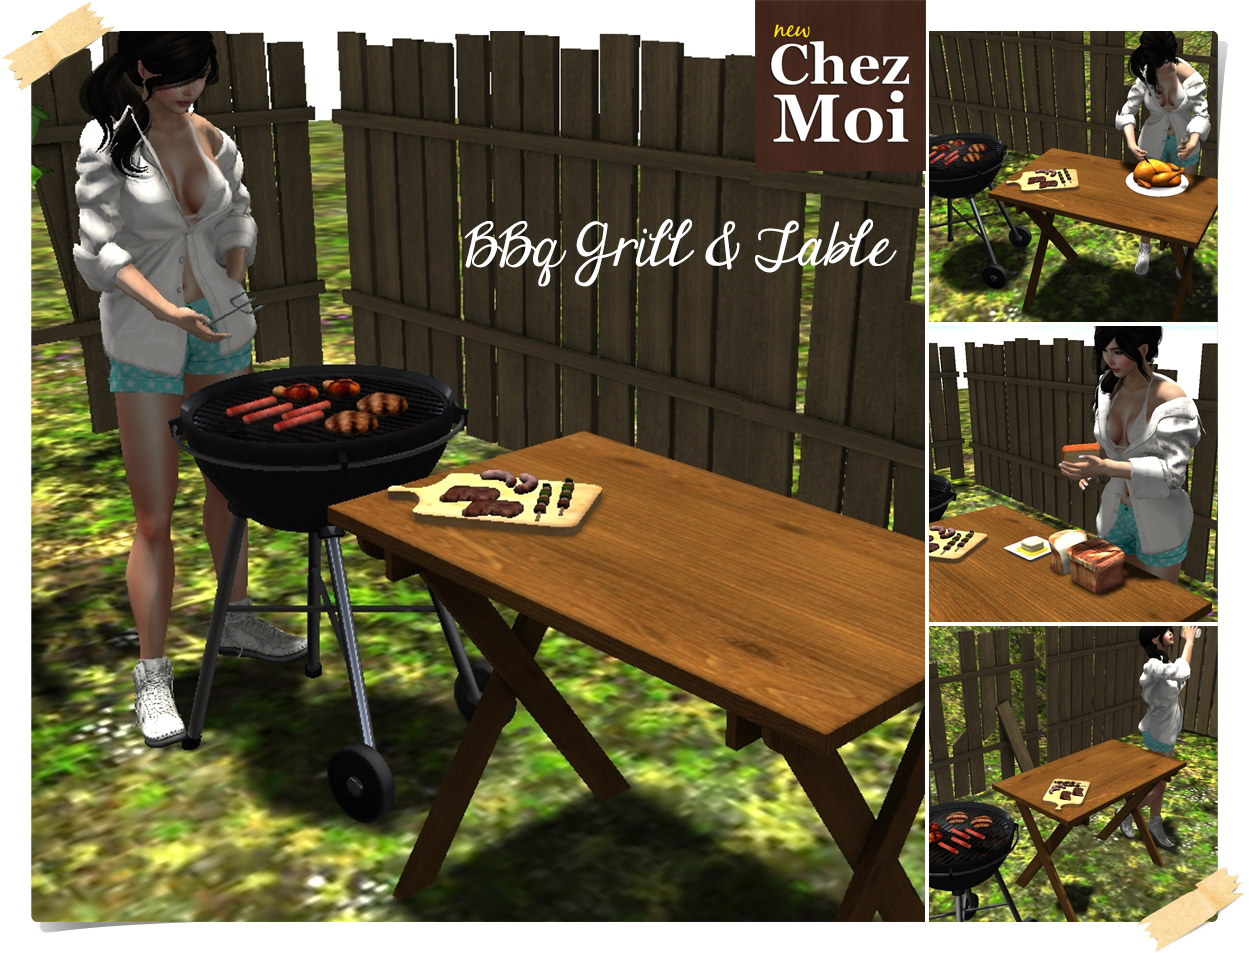 bbq grill and table